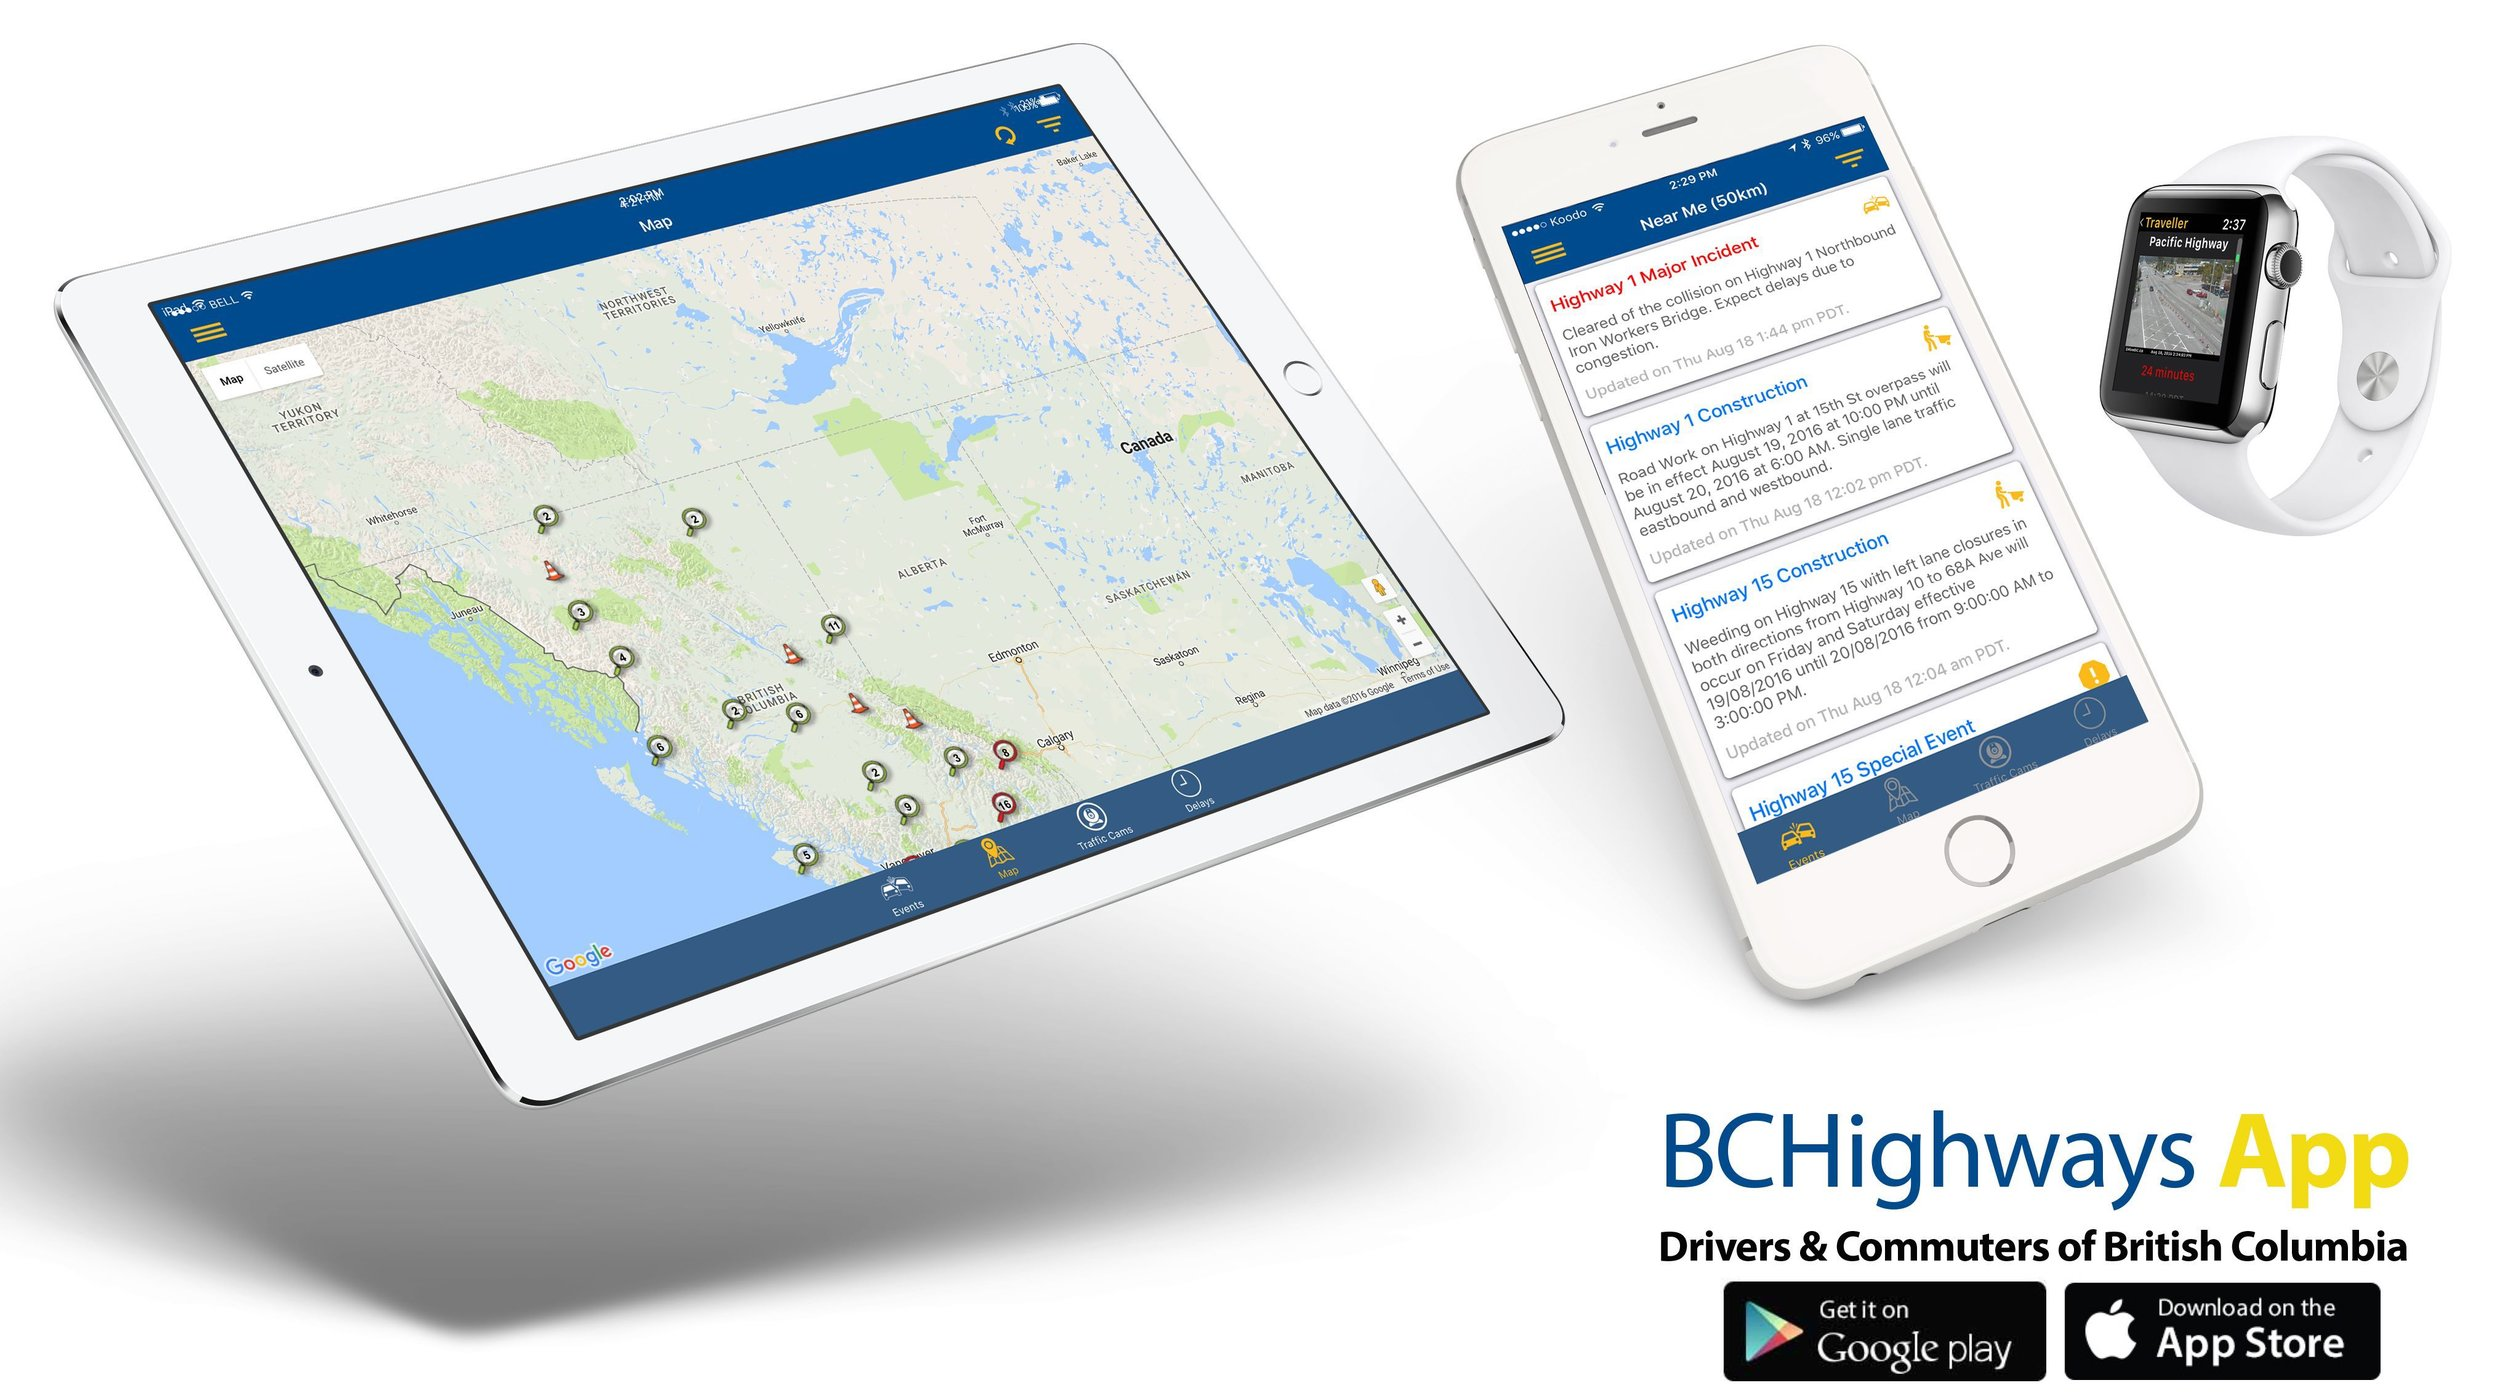 BC Highways Mockup - iPad iPhone Apple Watch white combo no text.jpg